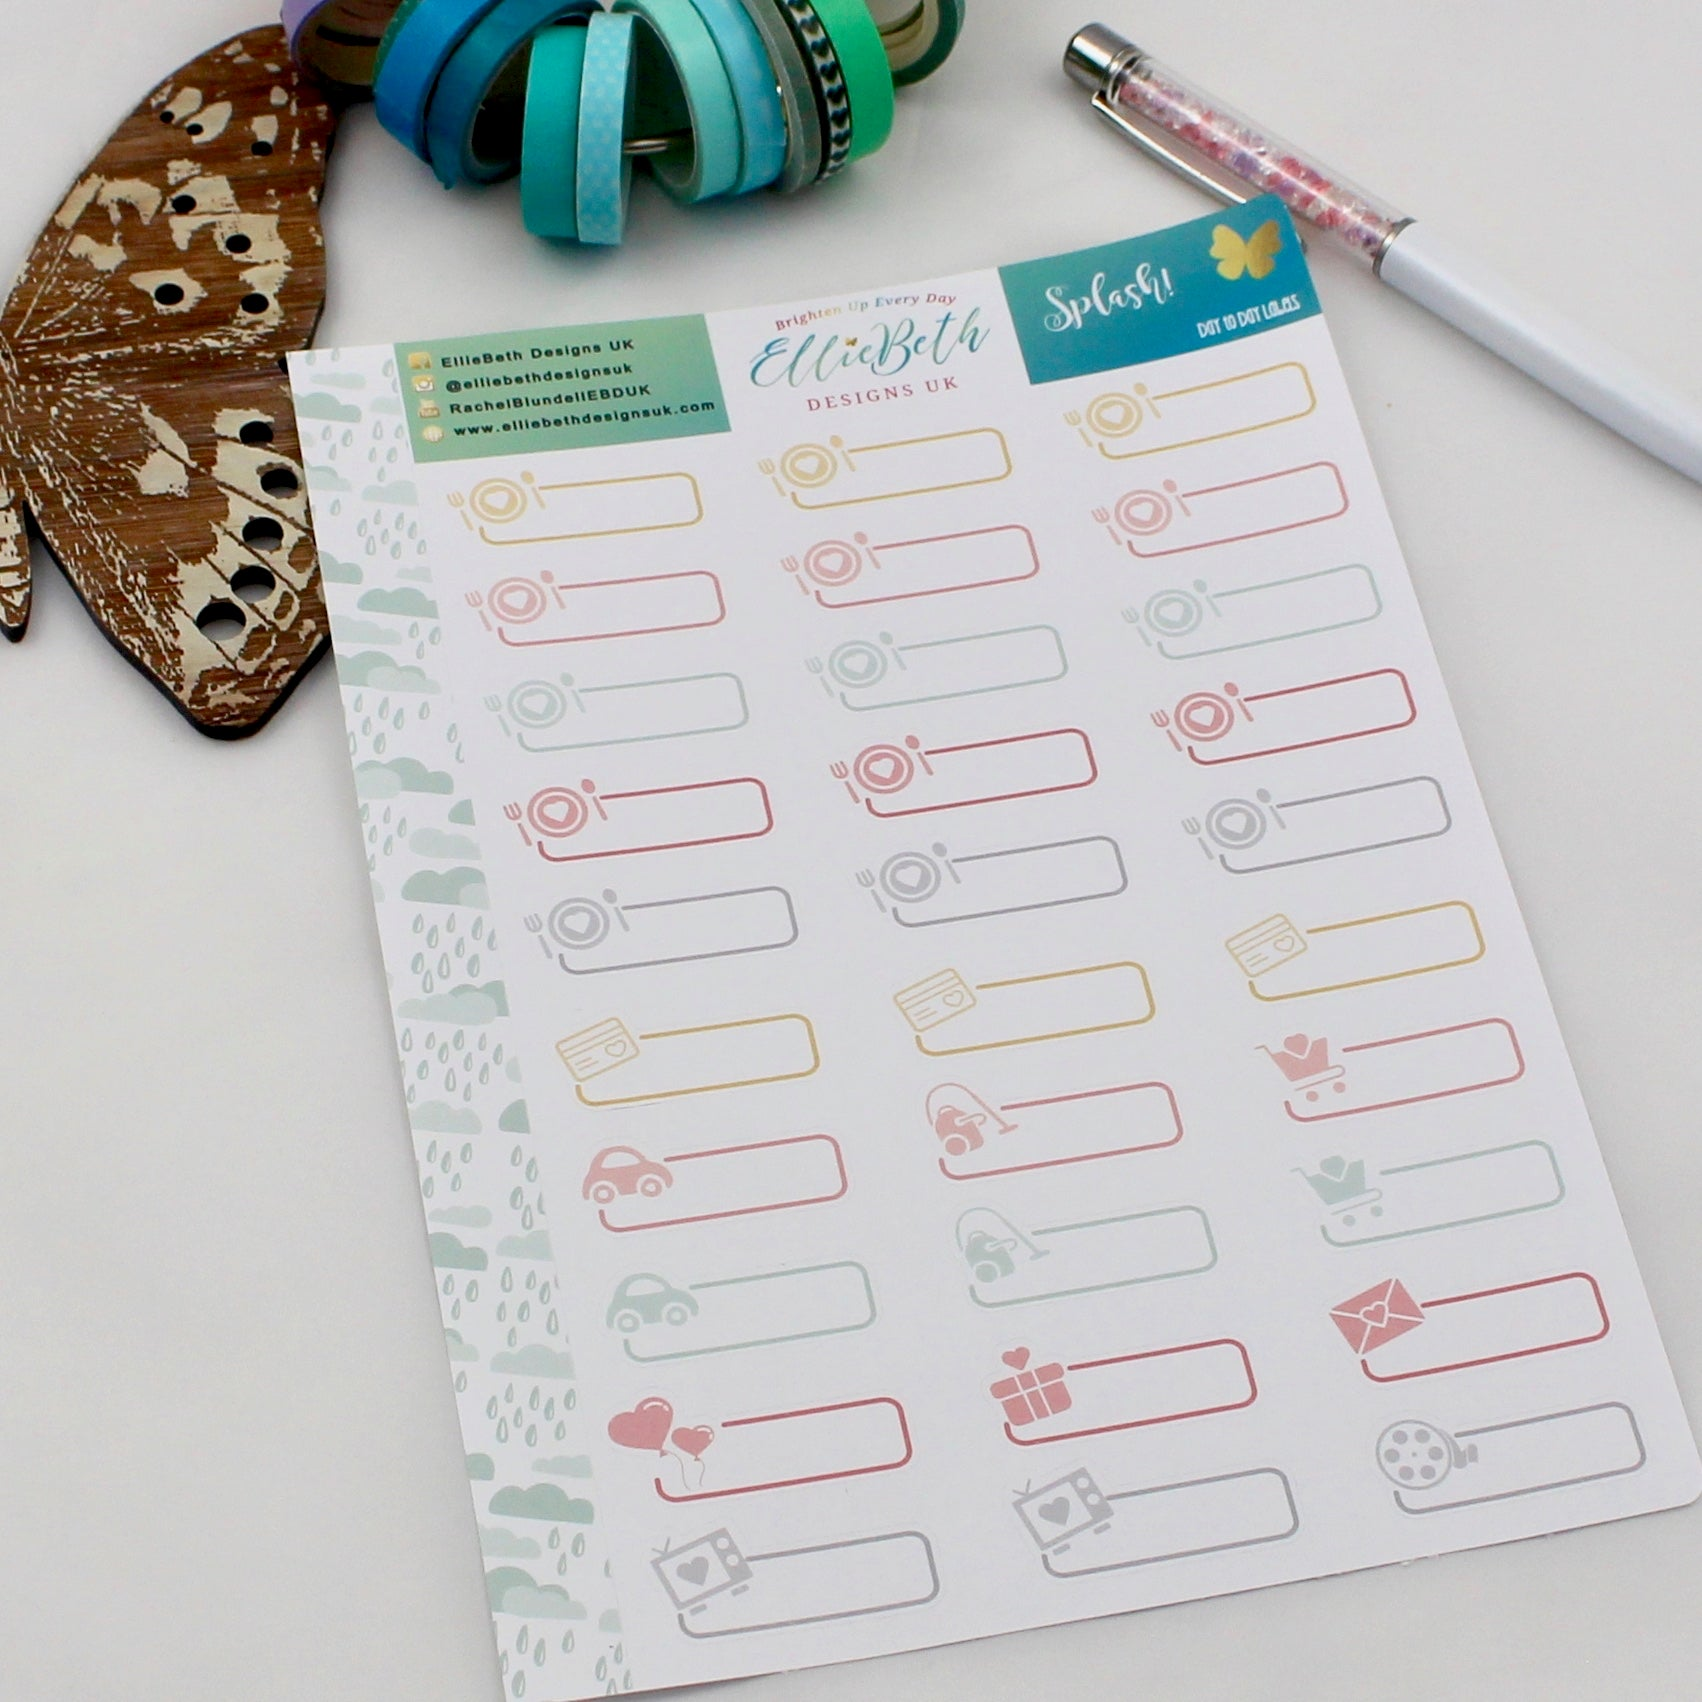 'Splash!' - Day to Day Labels - A5 binder ready planner stickers - EllieBeth Designs UK